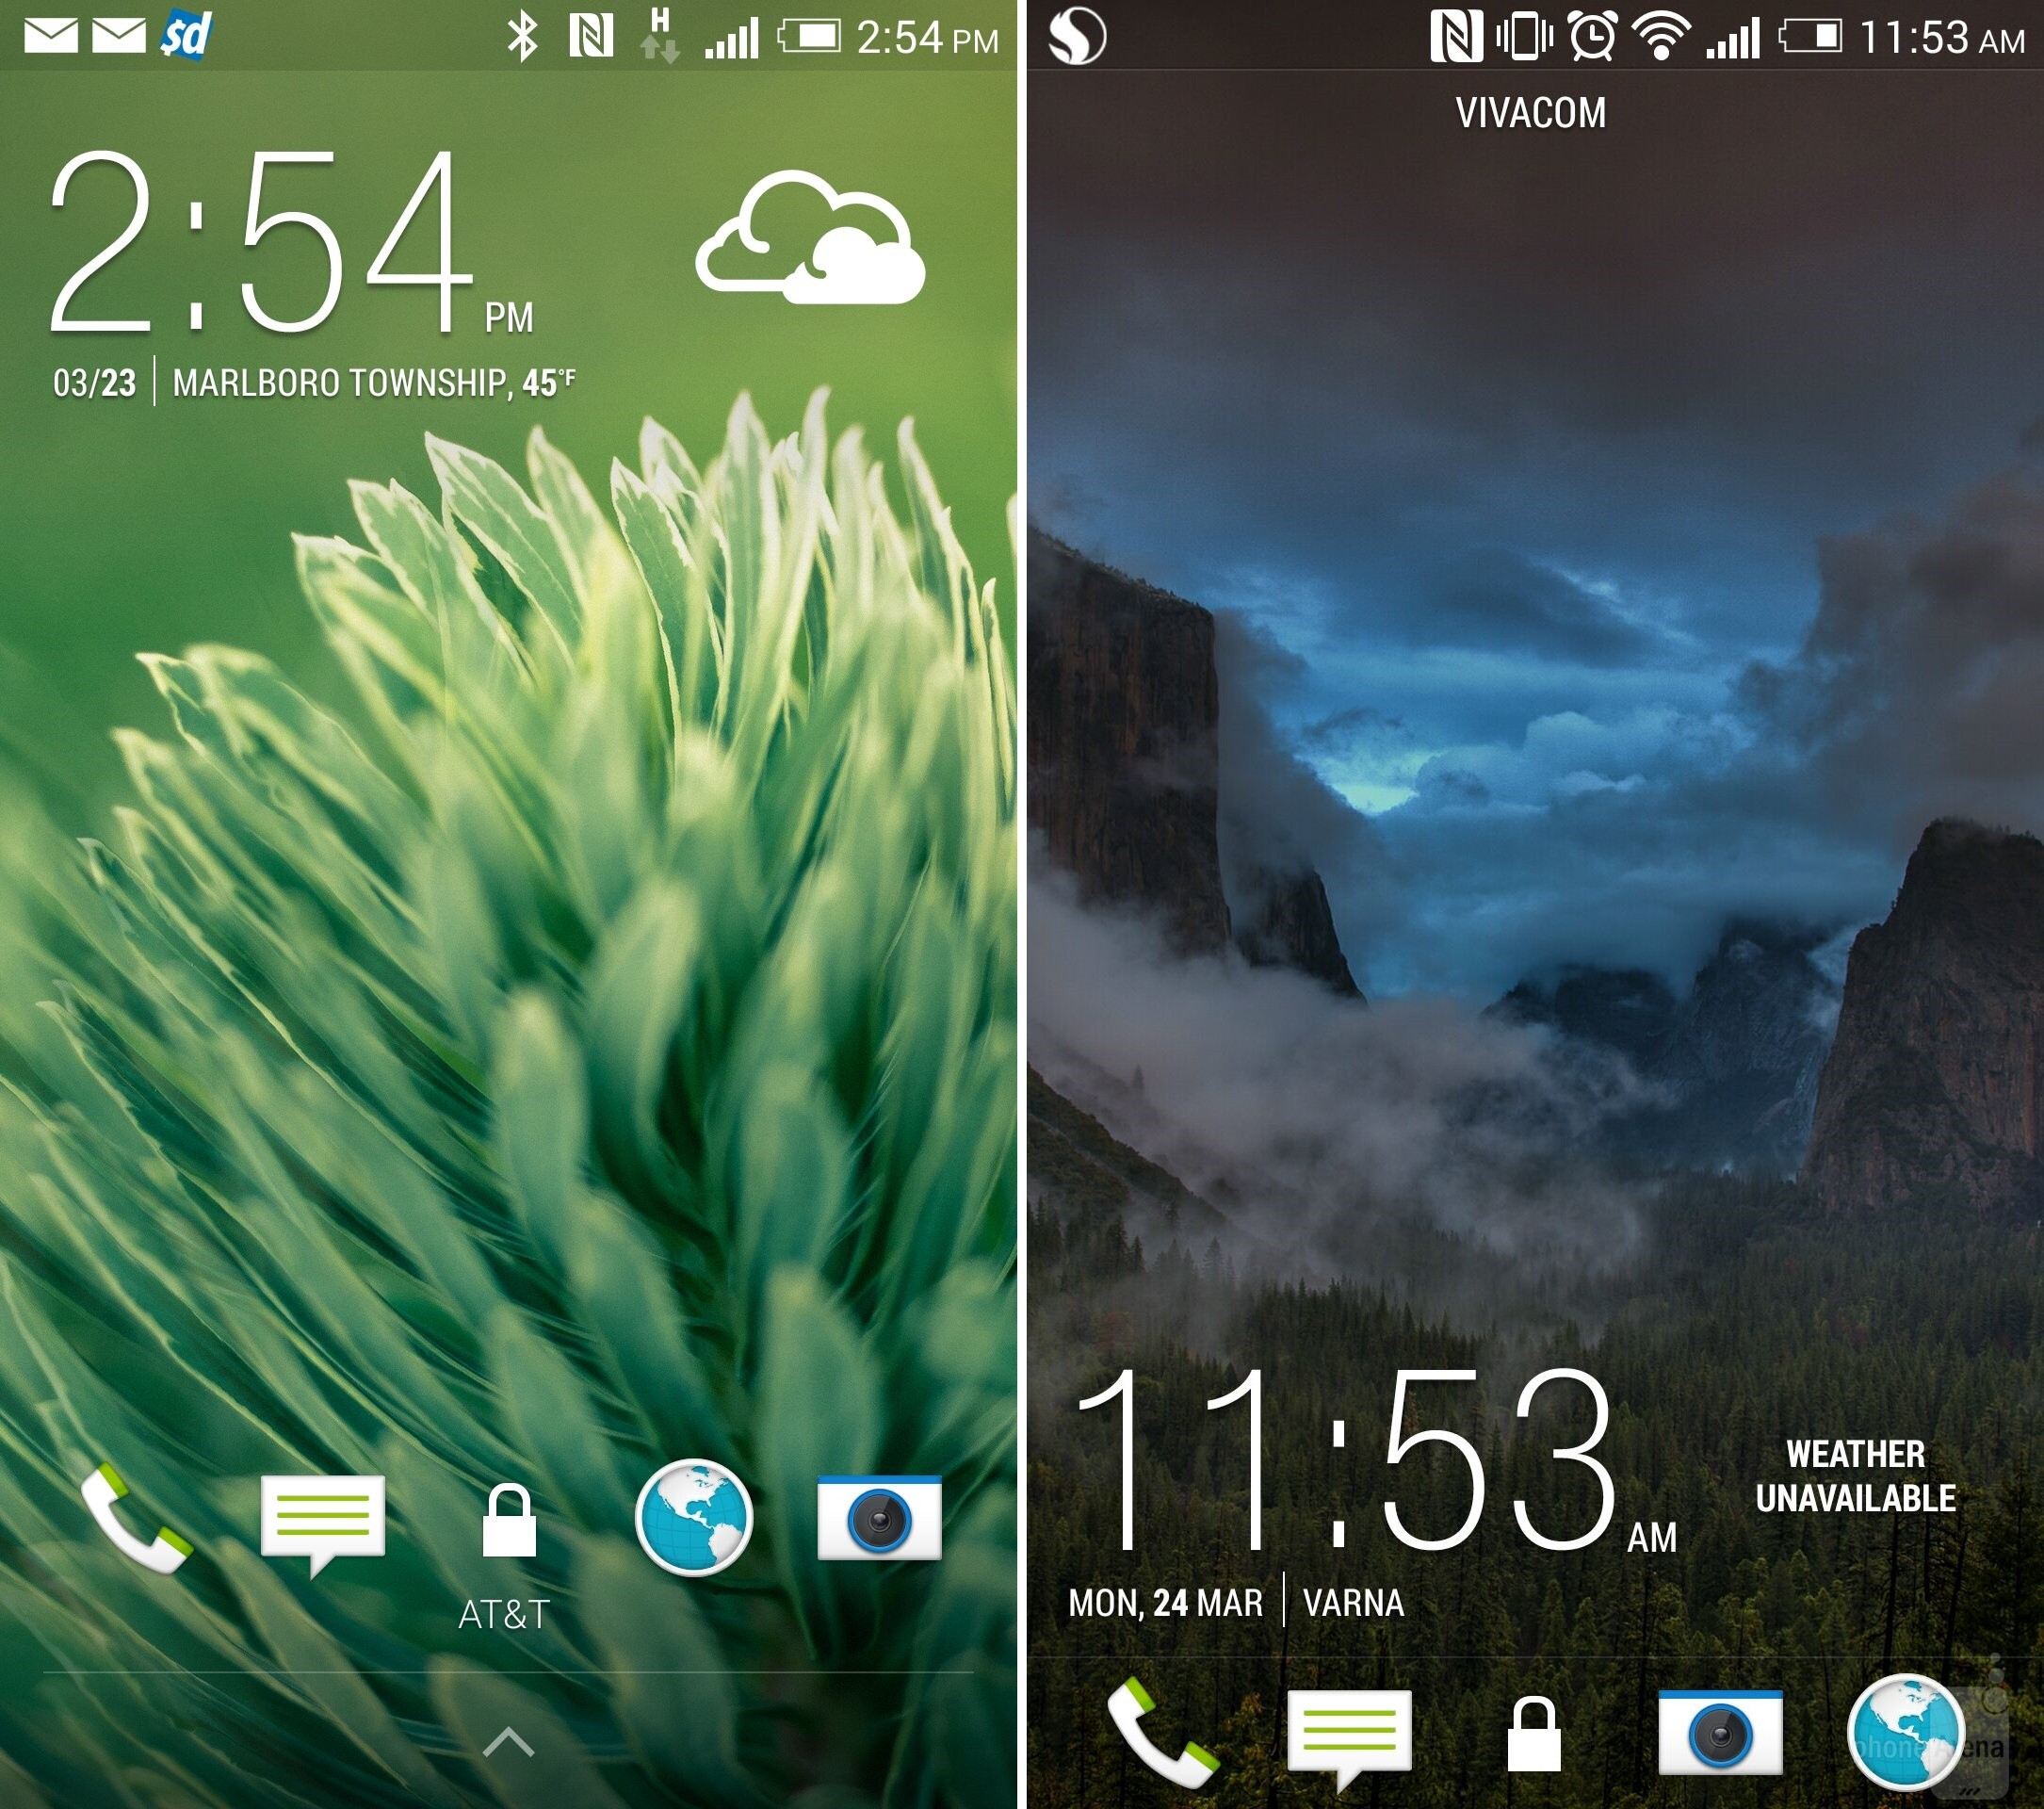 UI of the HTC One (M8) - left; HTC One (M7) - right